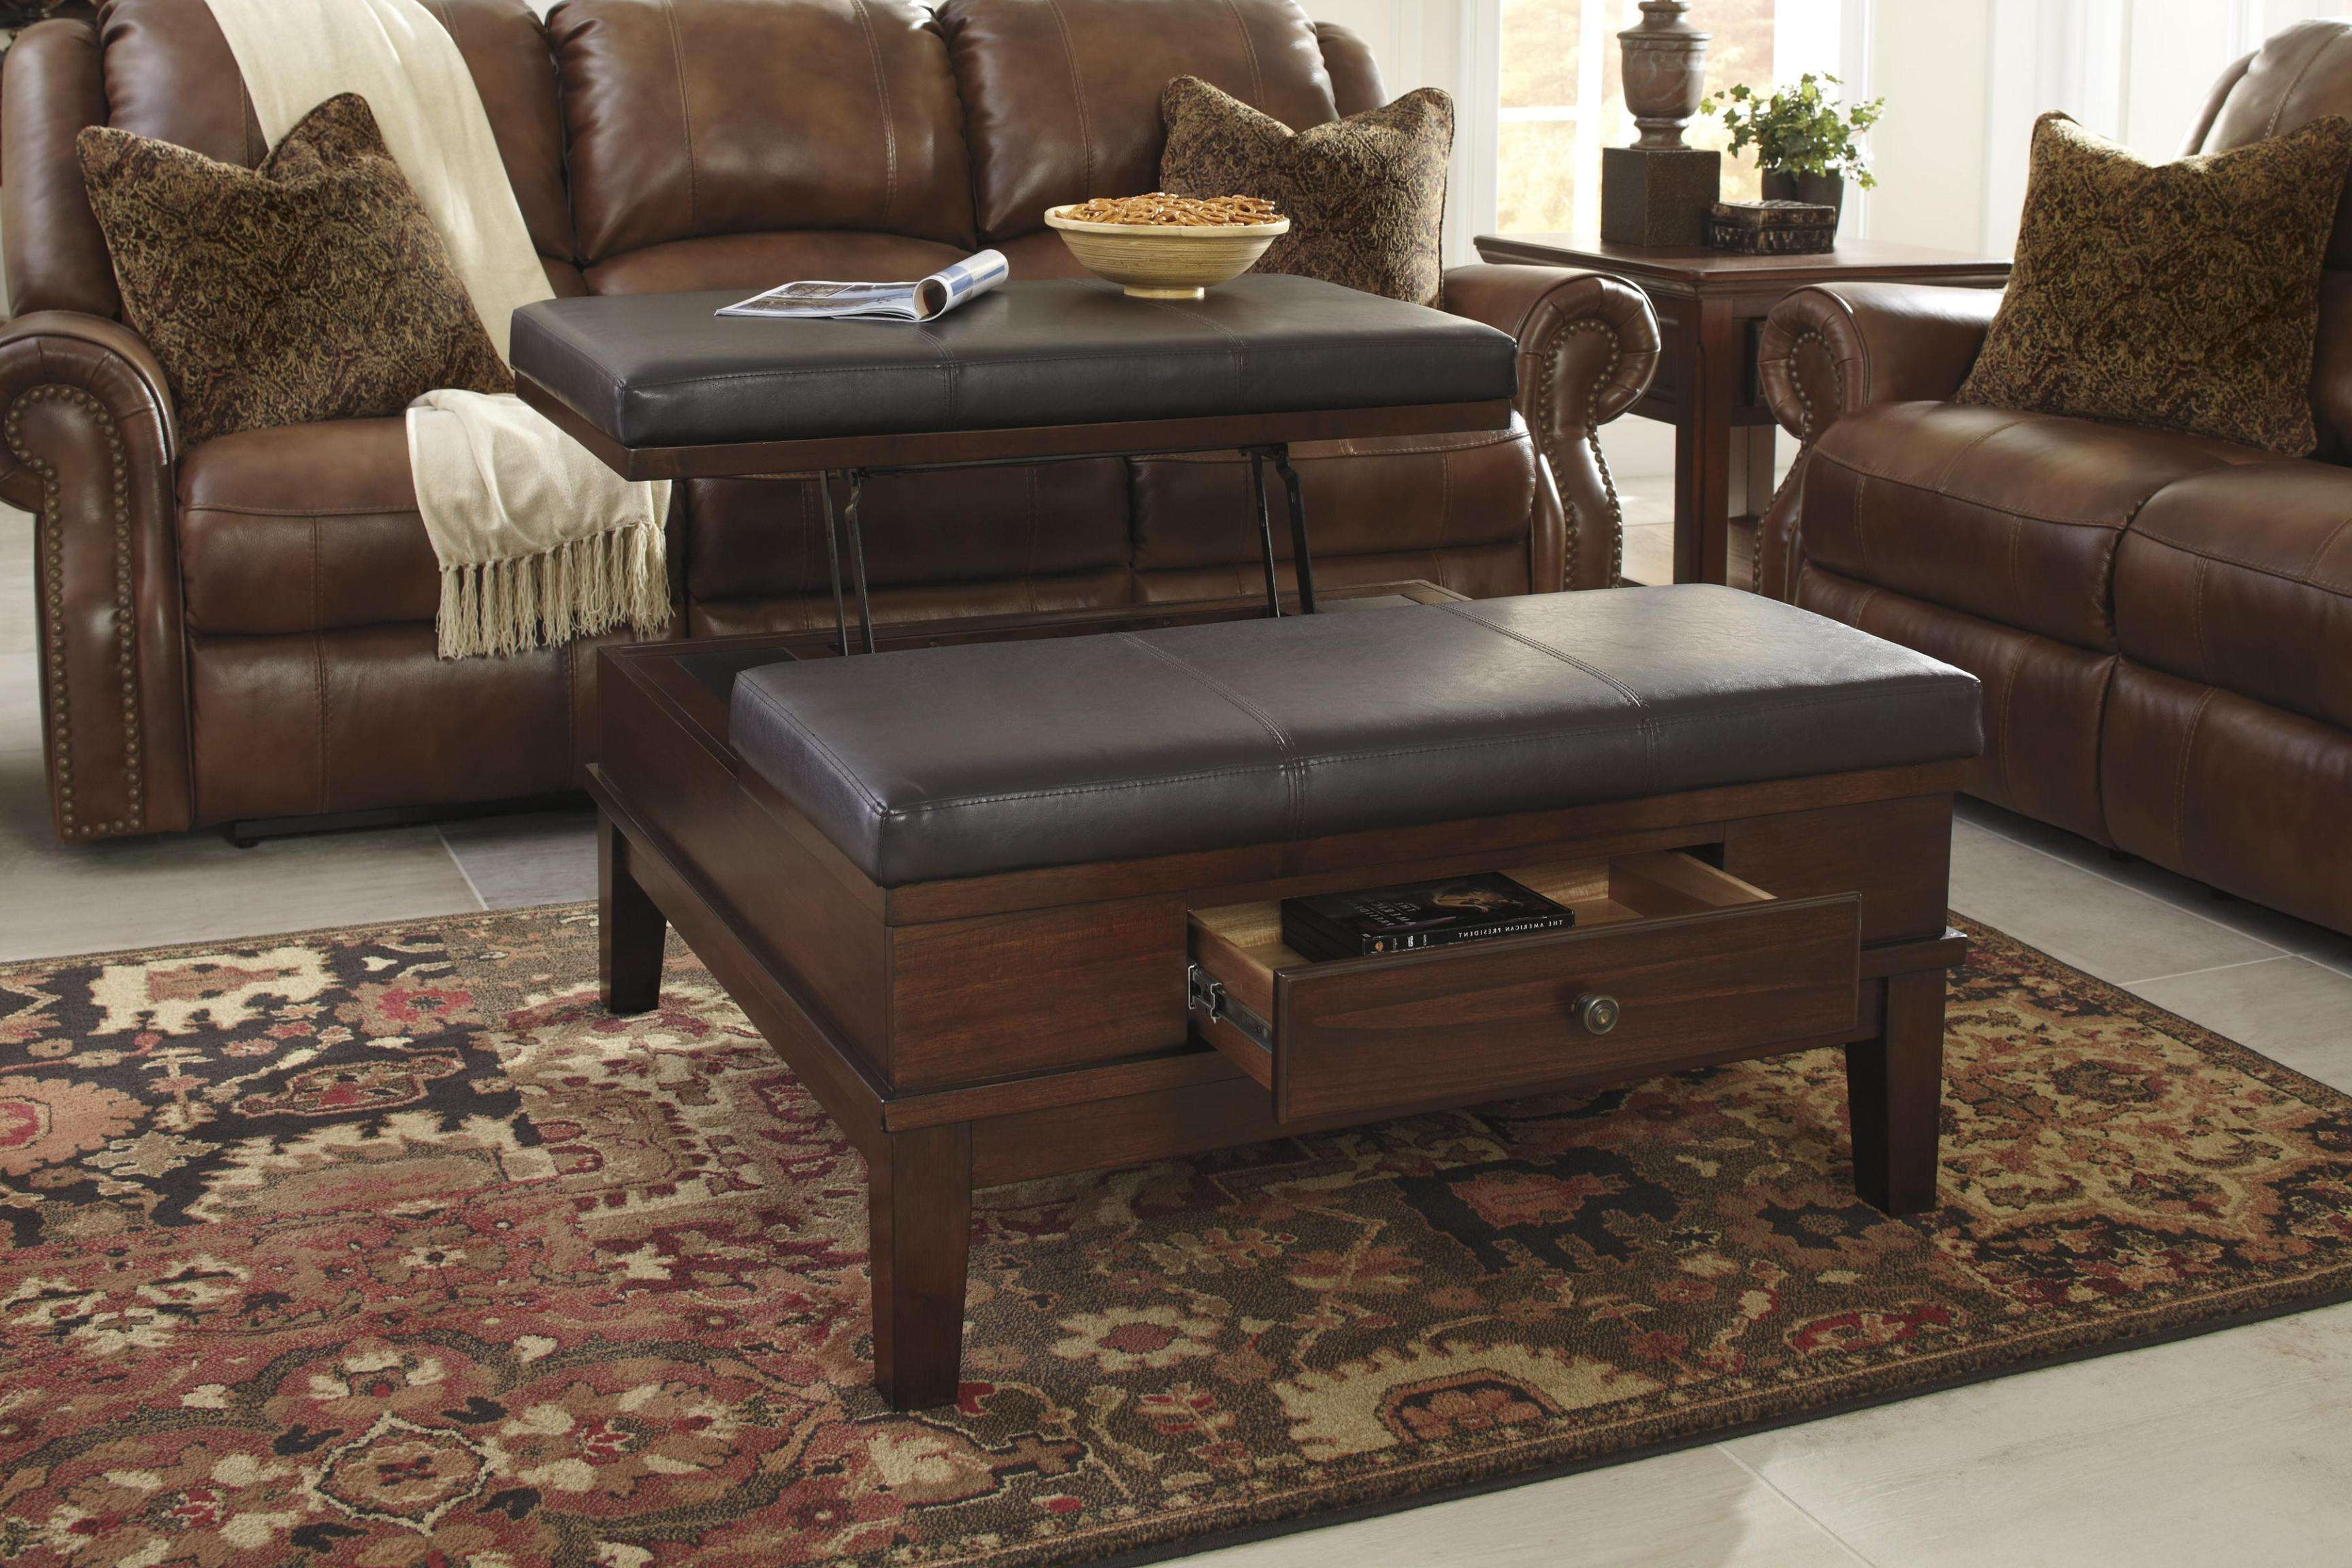 Popular Brown Leather Ottoman Coffee Tables With Storages In Leather Ottoman Coffee Table With Storage Ottoman With Shelf With (View 11 of 20)